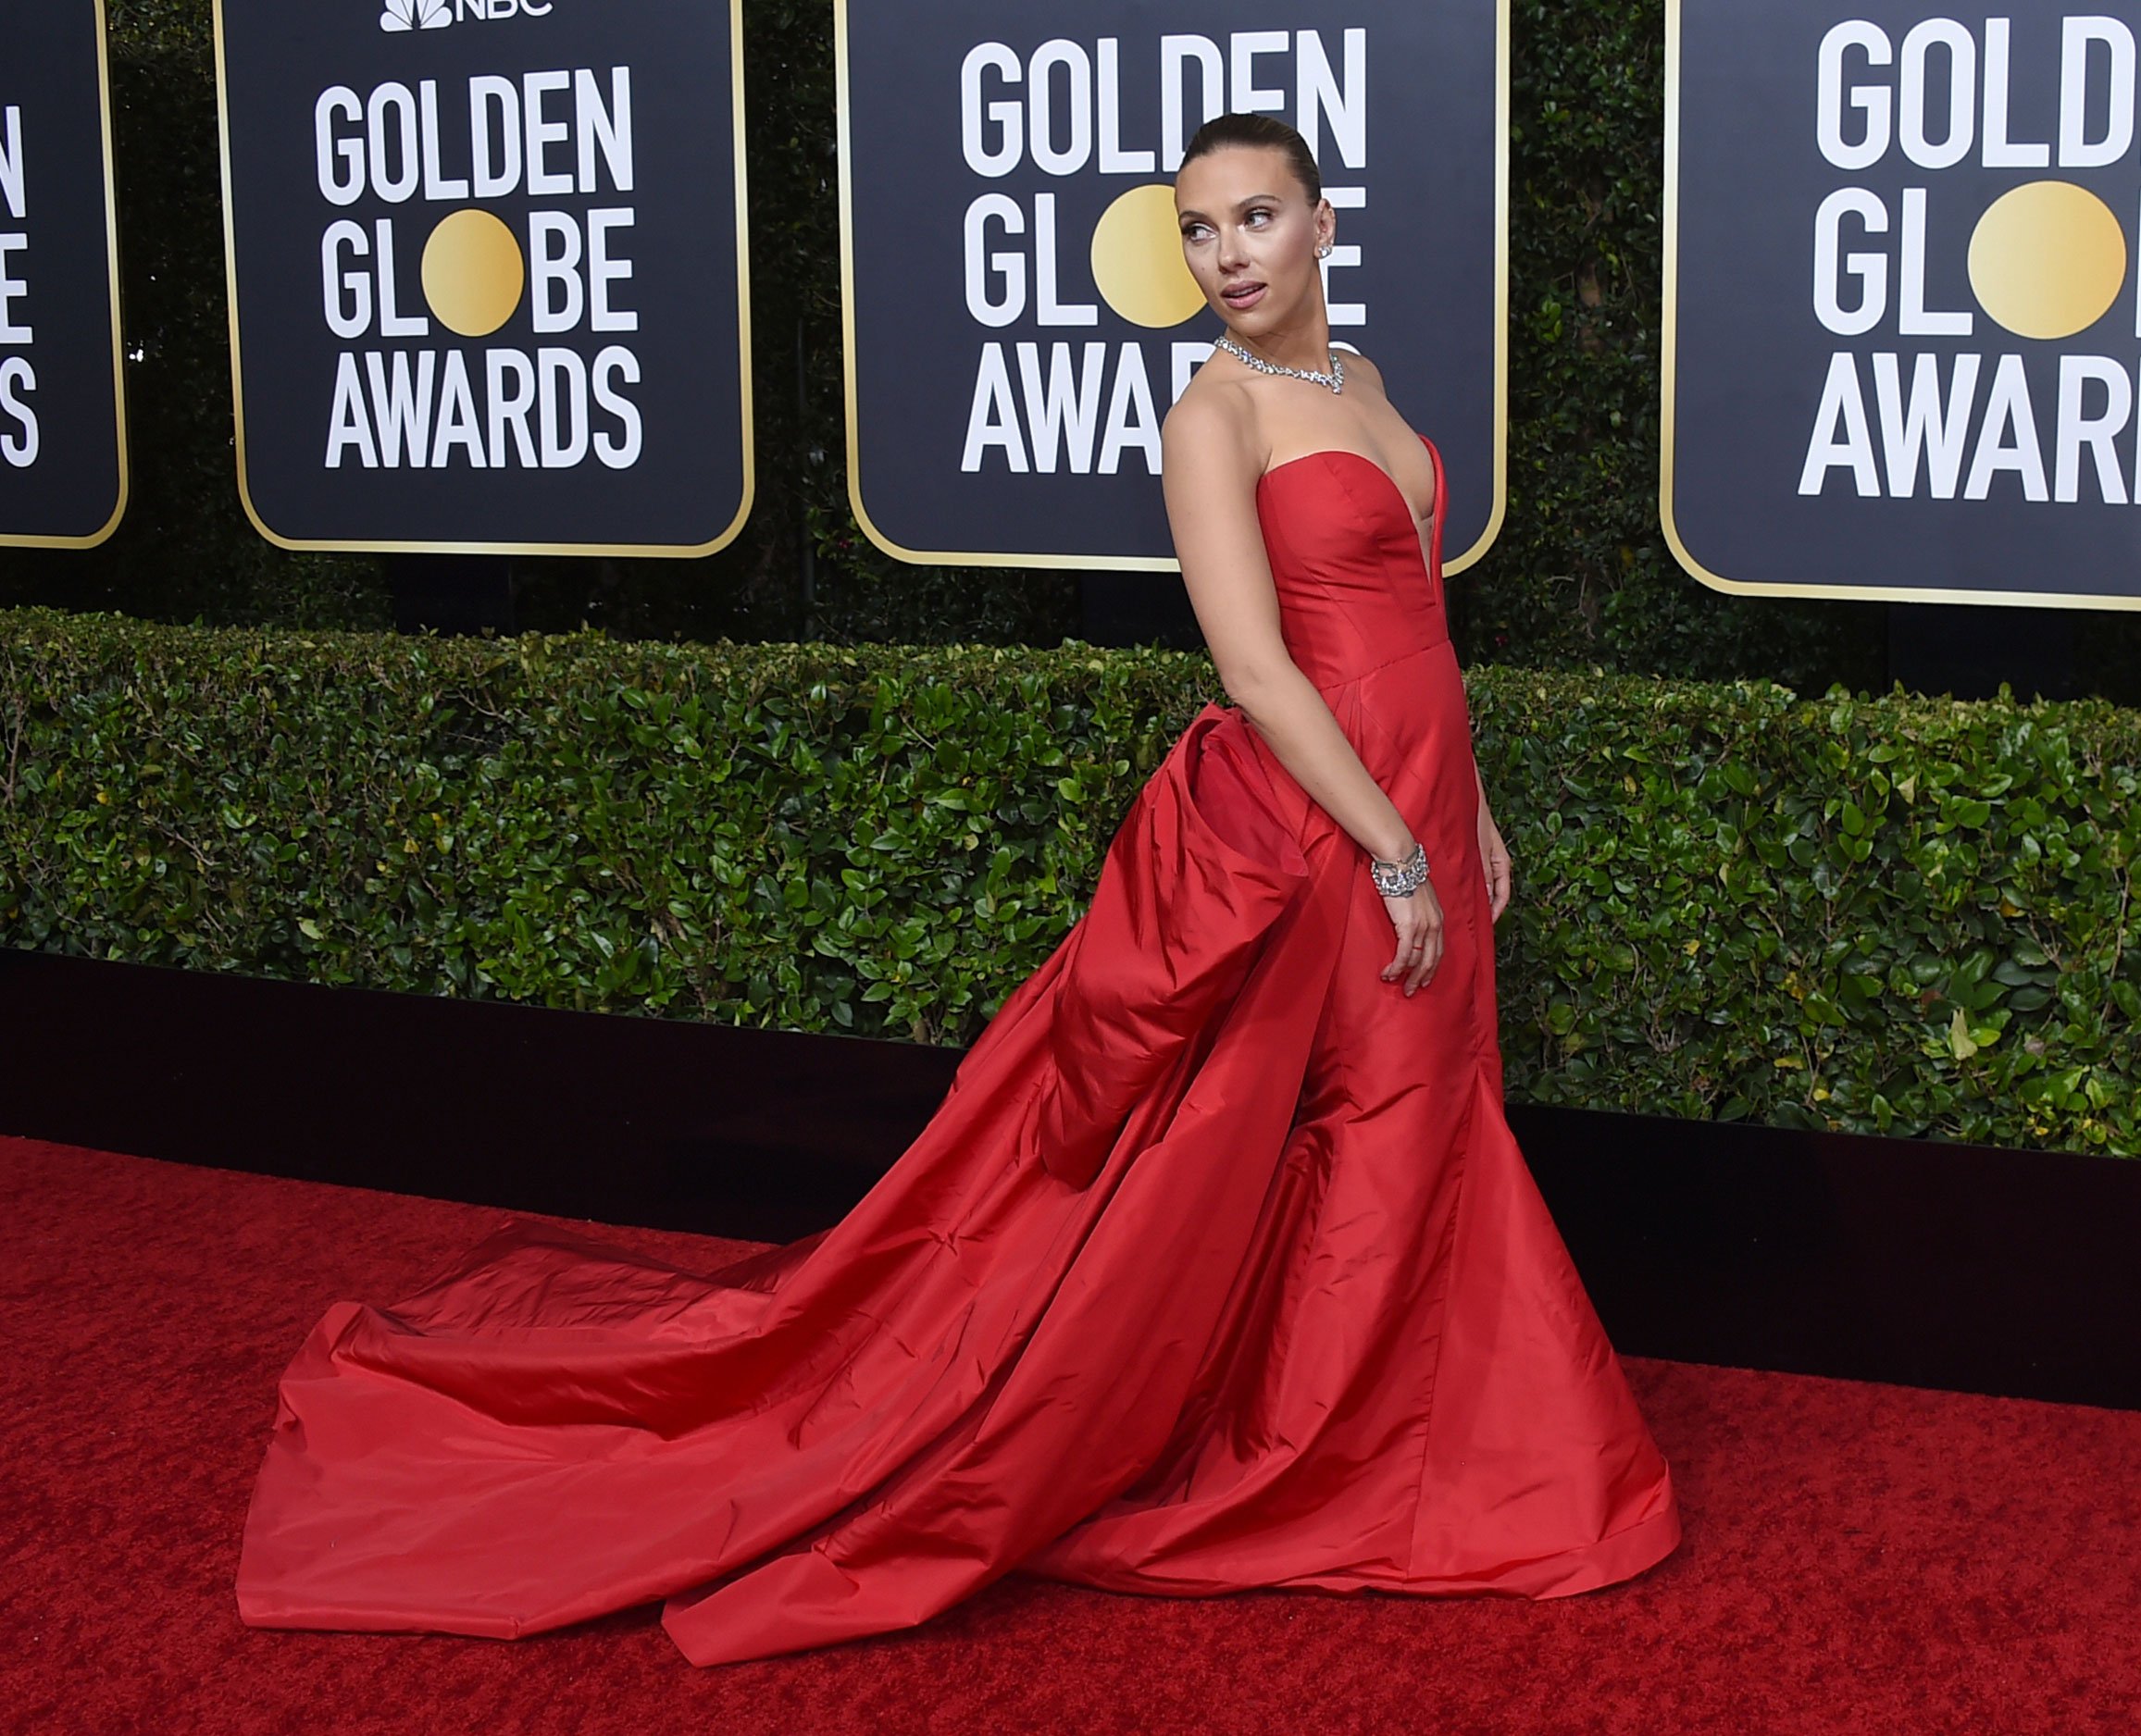 Few things in life are permanent and one of them is the classic red outfit on the red carpet. Scarlett Johansson, who had worn red in 2006 at the red carpet of the same award ceremony, channelled the shade again in a simple yet stunning Vera Wang gown. The strapless gown with a train and accessorised with Bulgari jewels, oozed some serious old world Holly oomph.